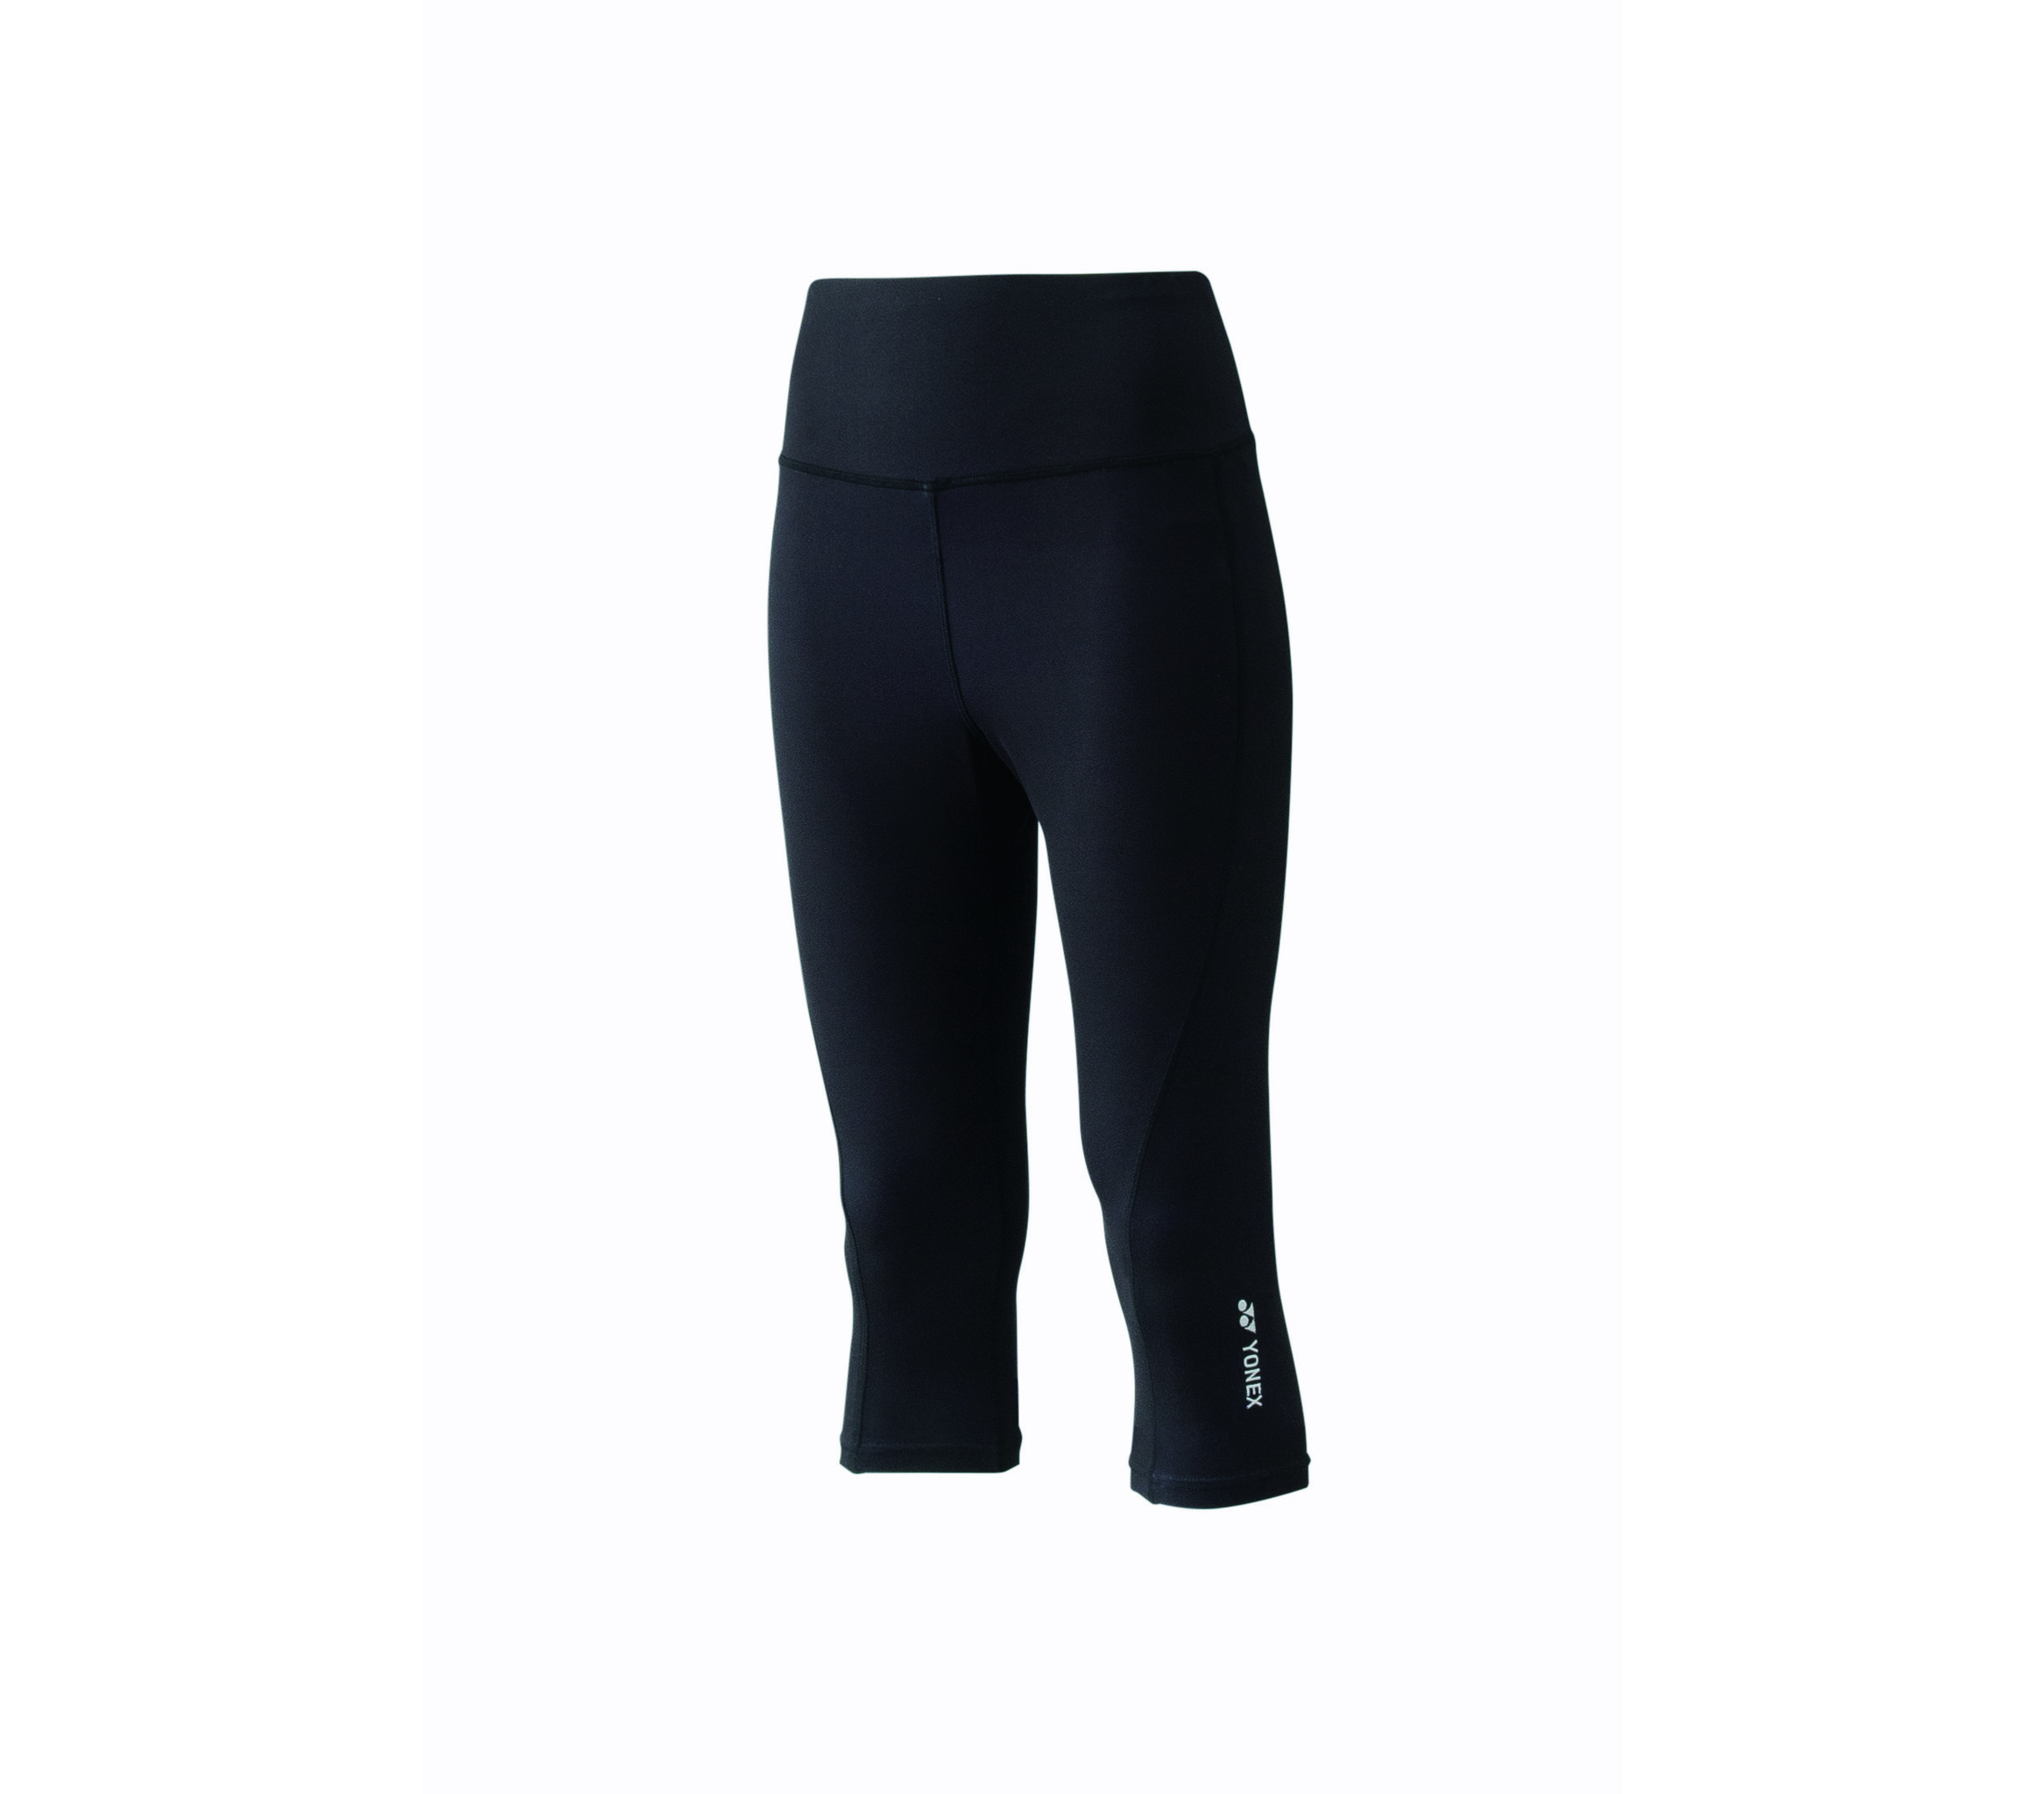 Yonex Womens leggings 69005 Black